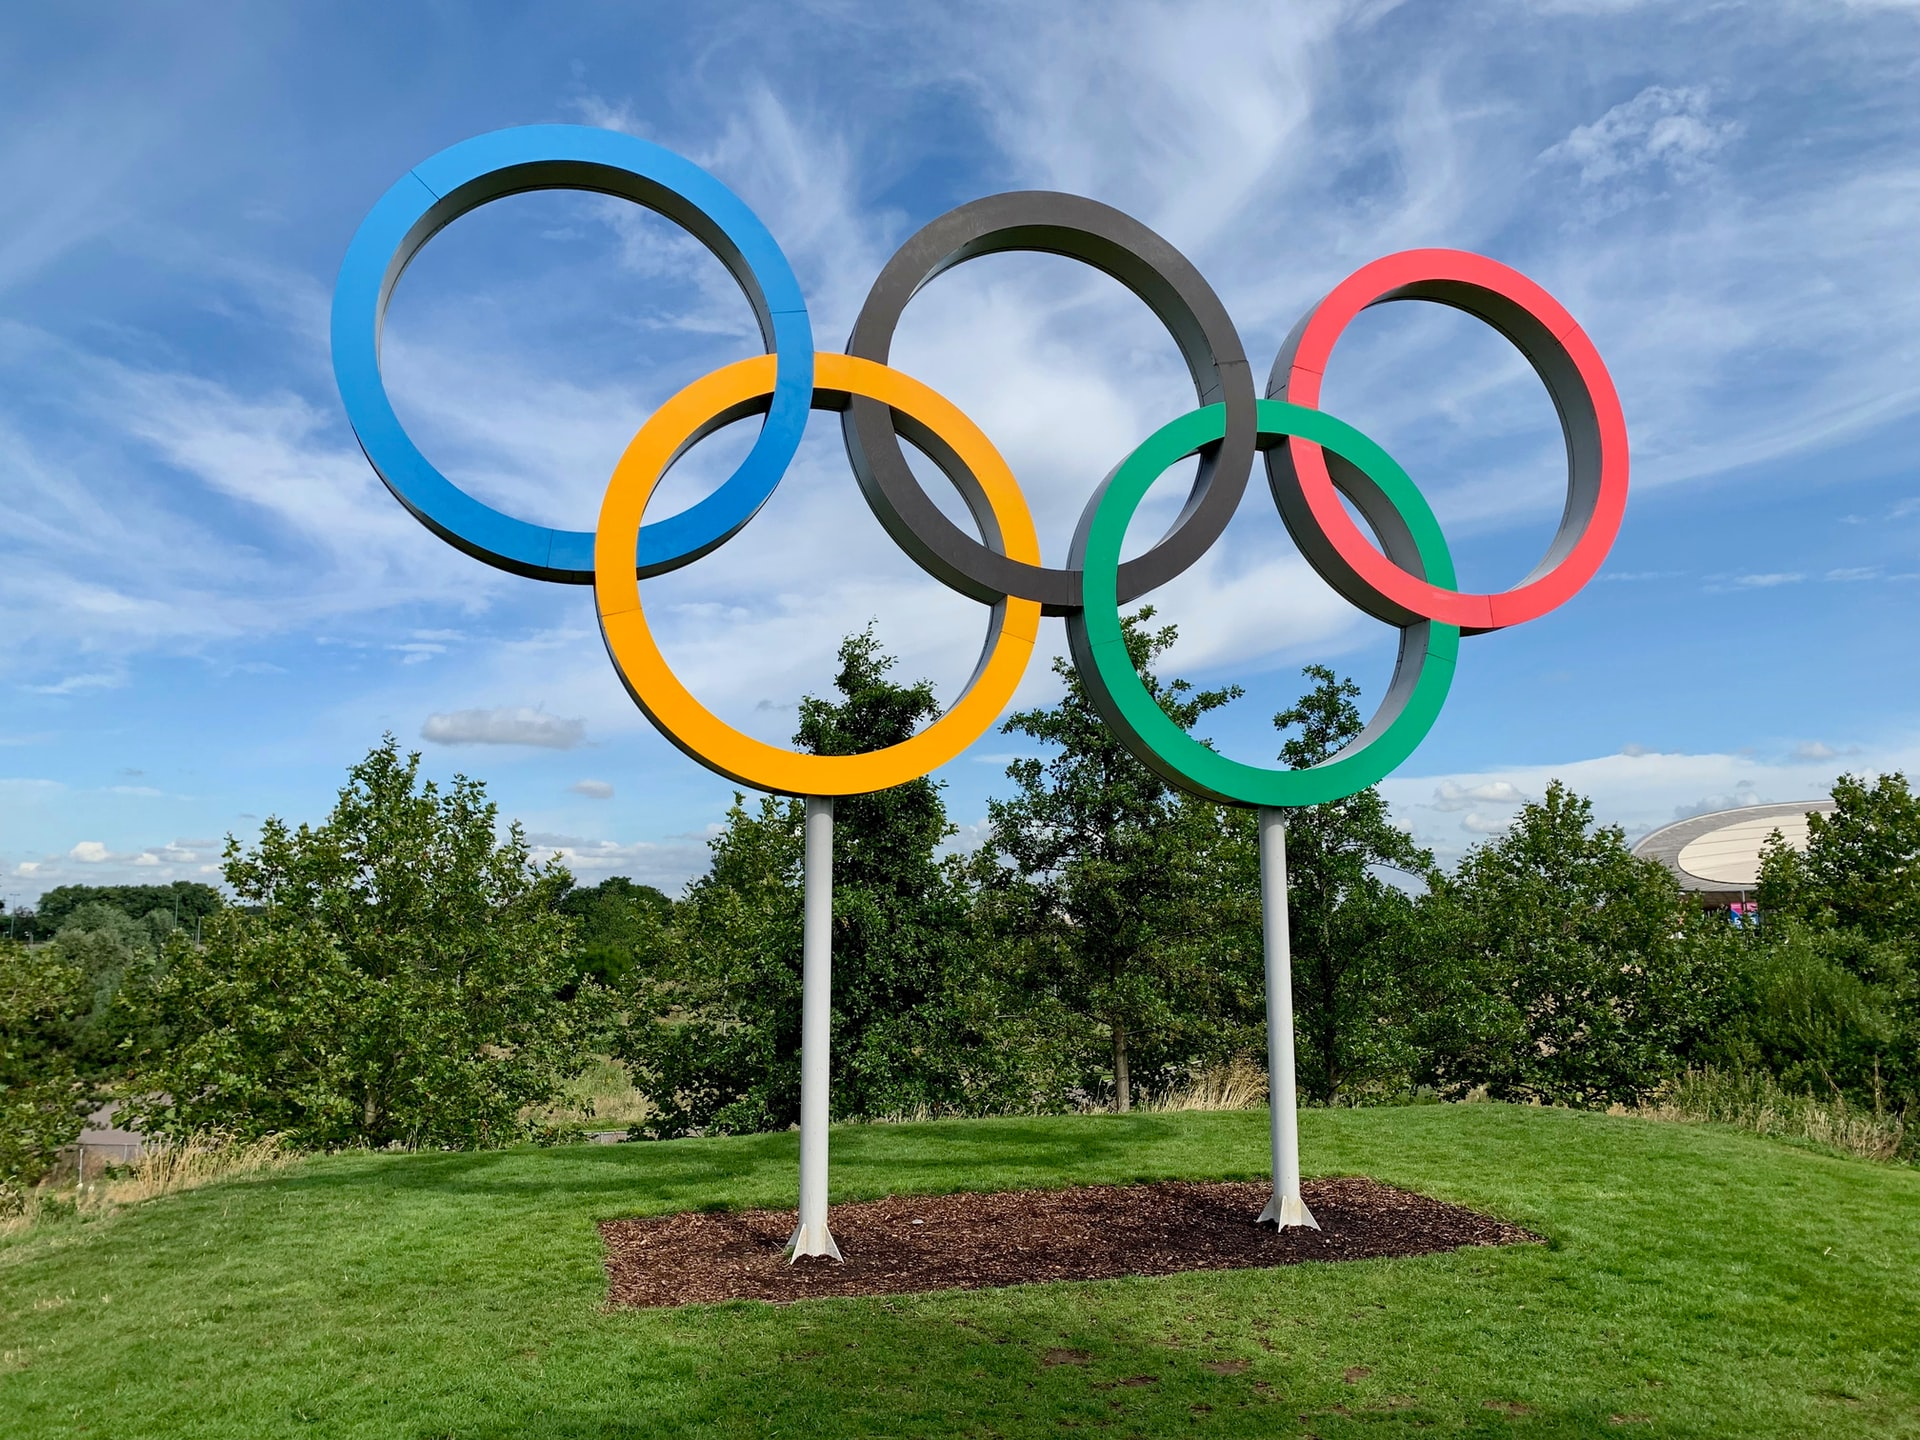 Brisbane's infrastructure plan for 2032 Olympic Games